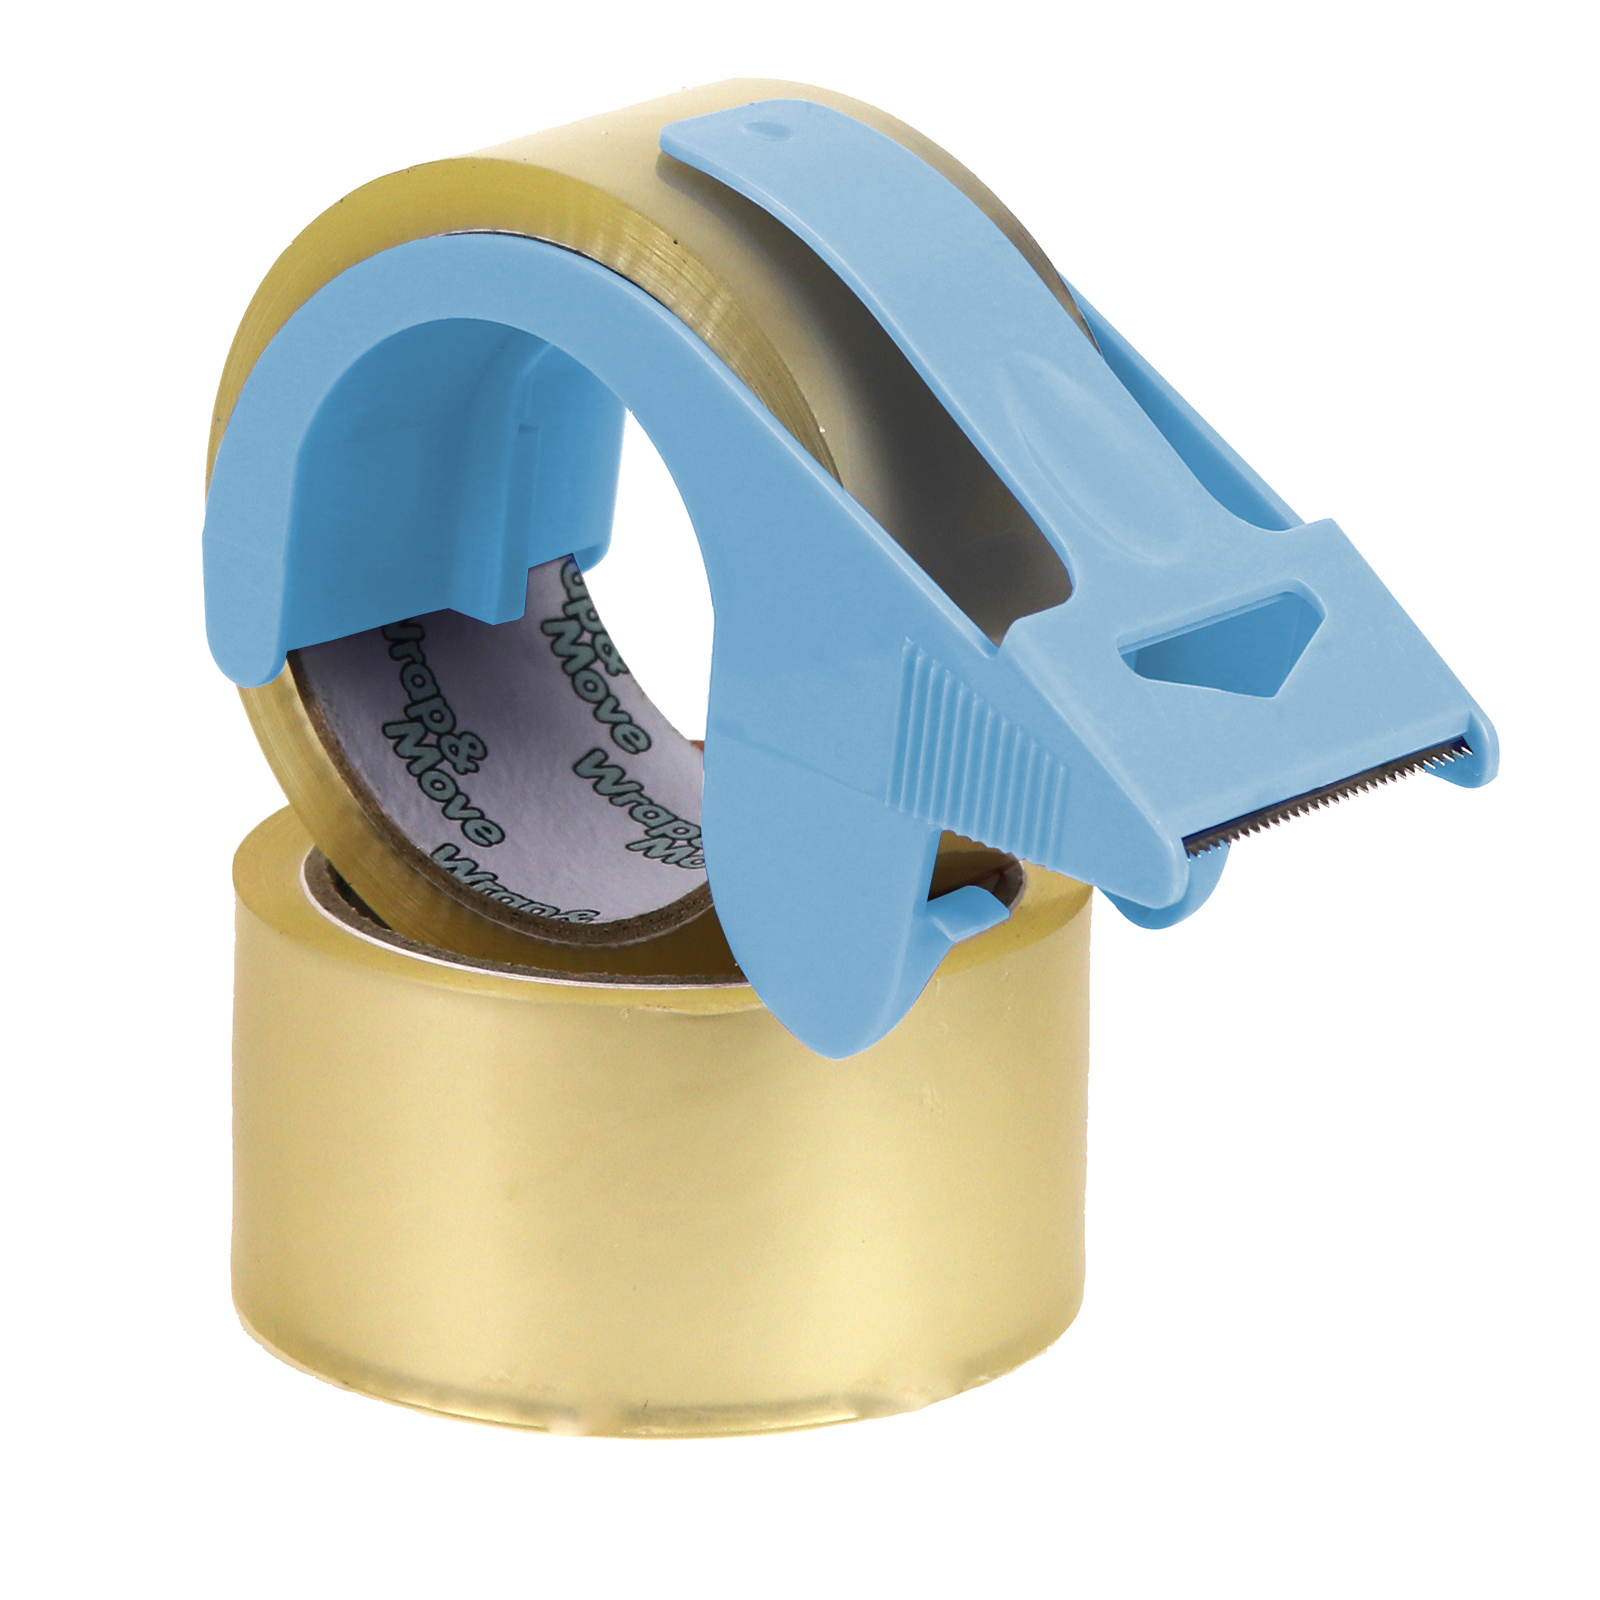 Wrap & Move Handheld Tape Dispenser With 2 Tape Rolls